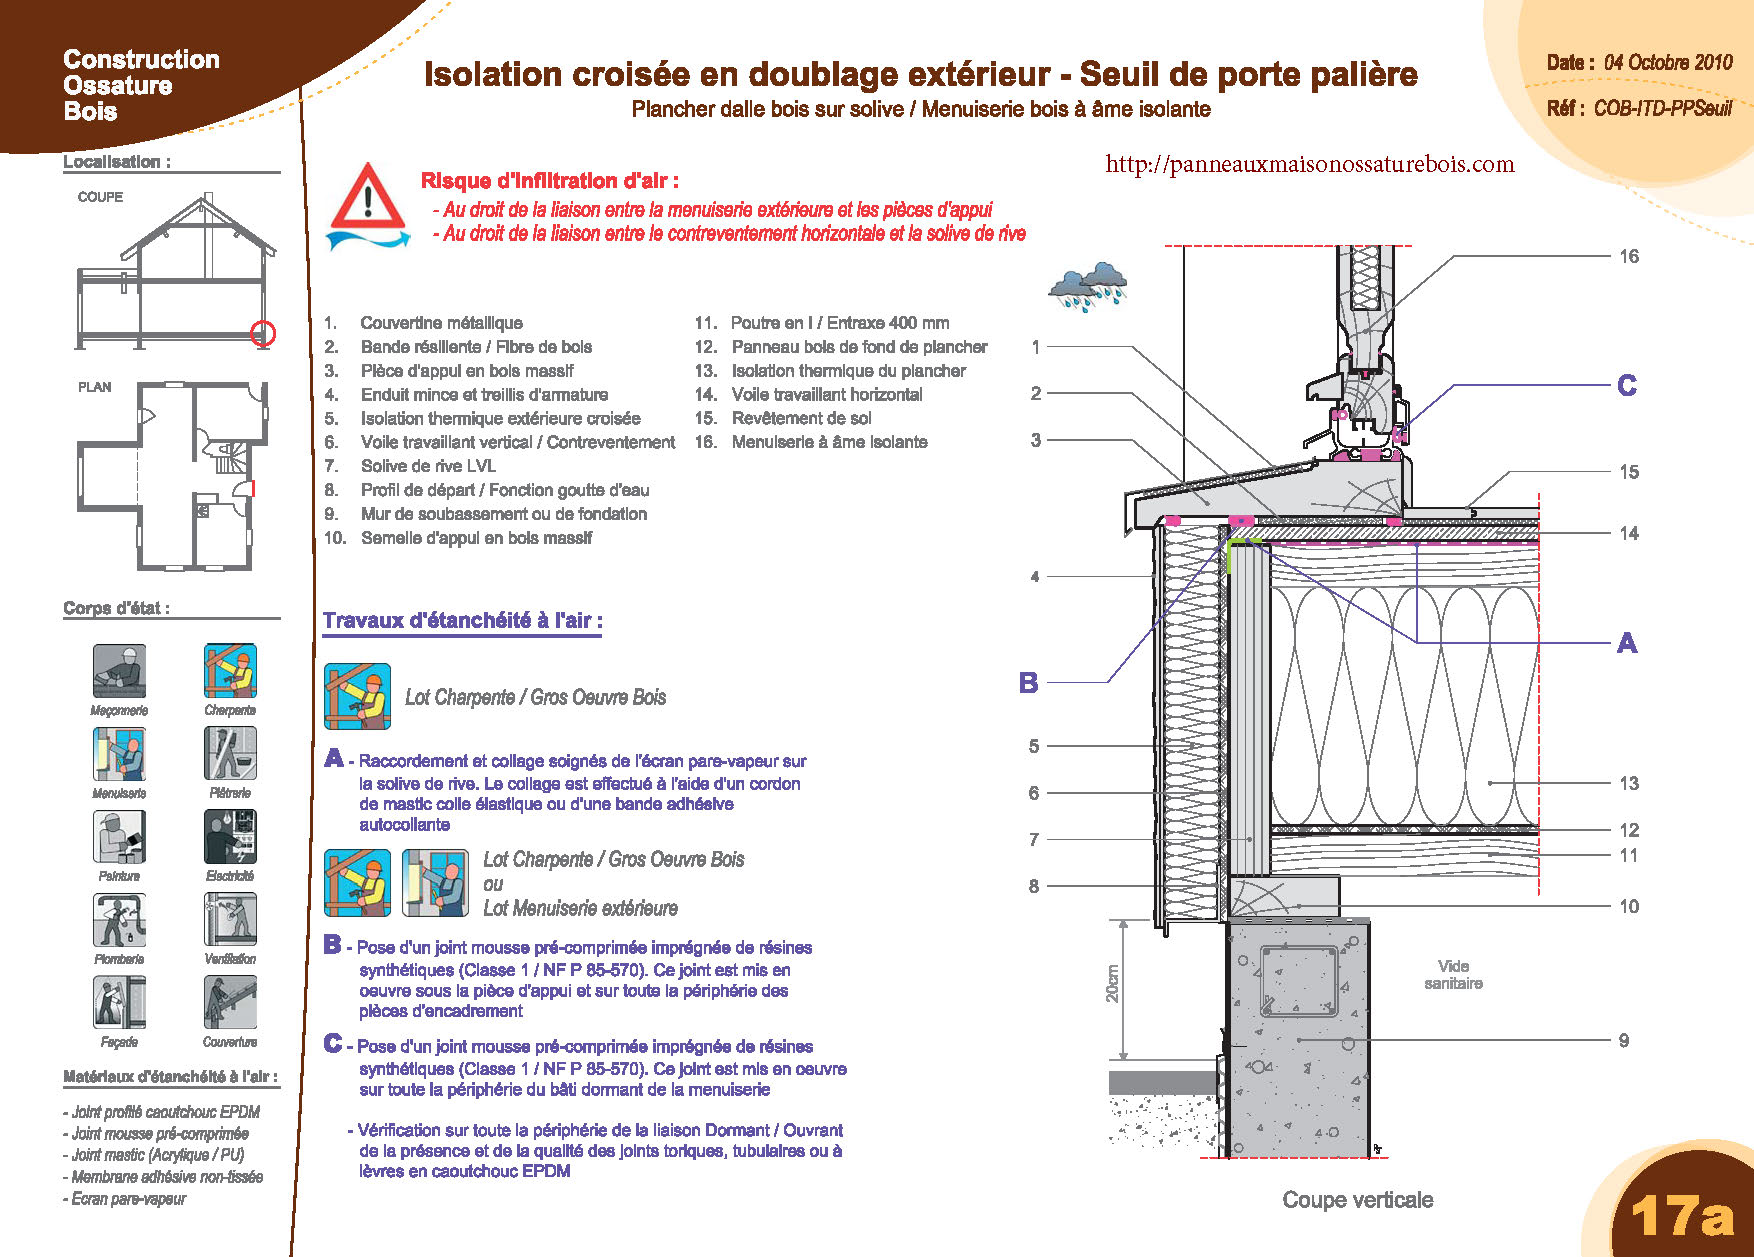 coupes construtions ossature bois complets_Page_54